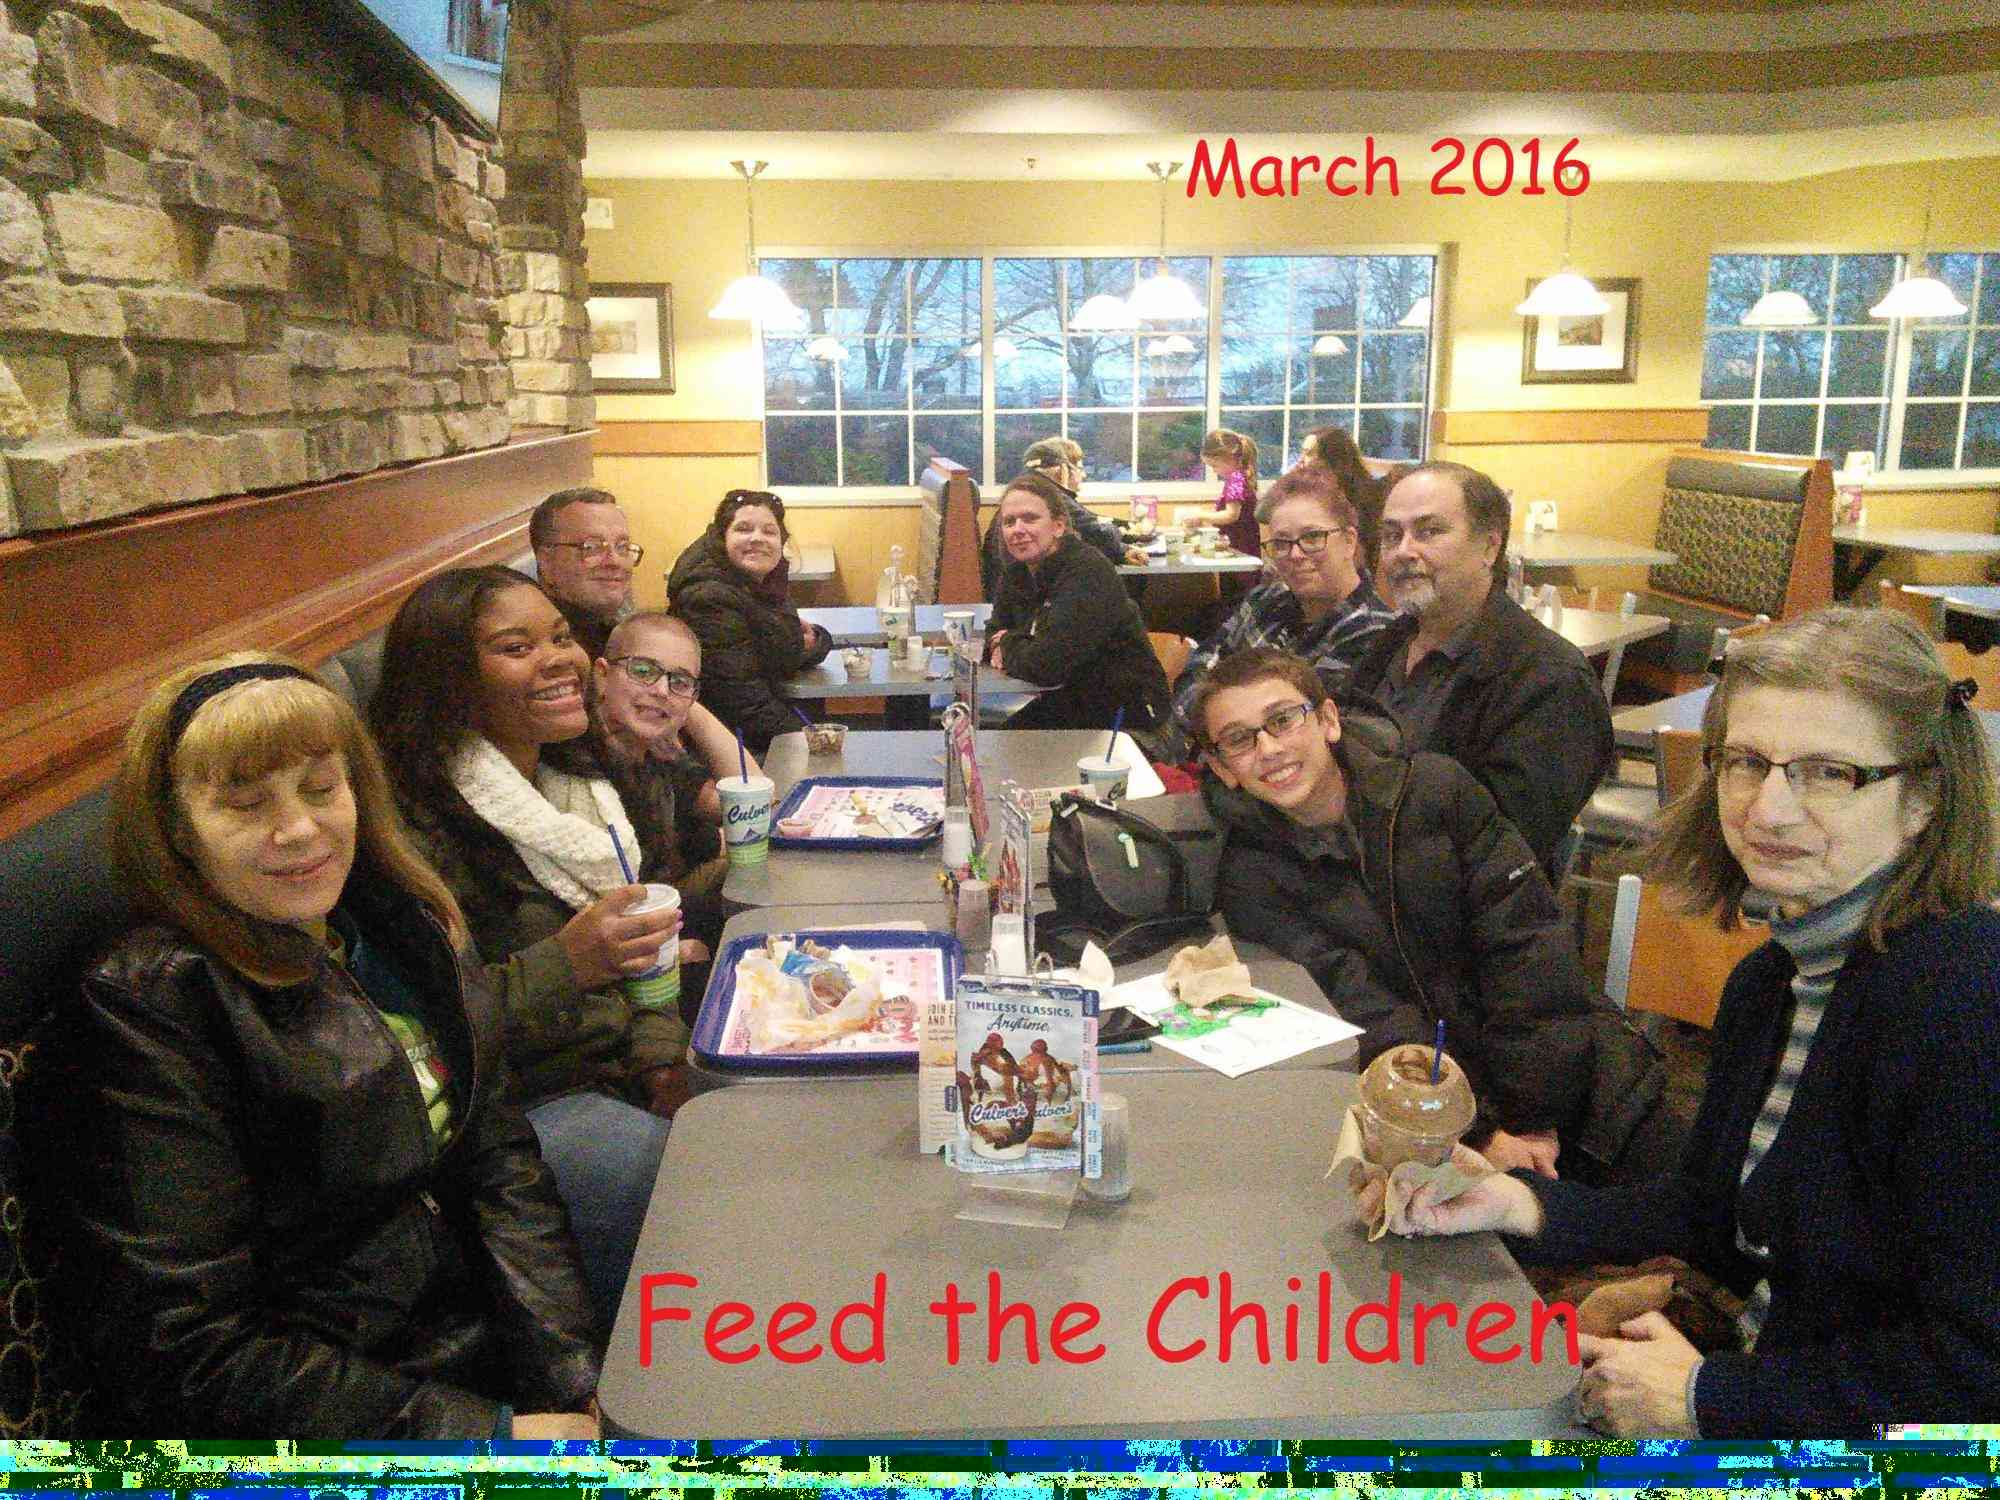 Feed the Children March 2016